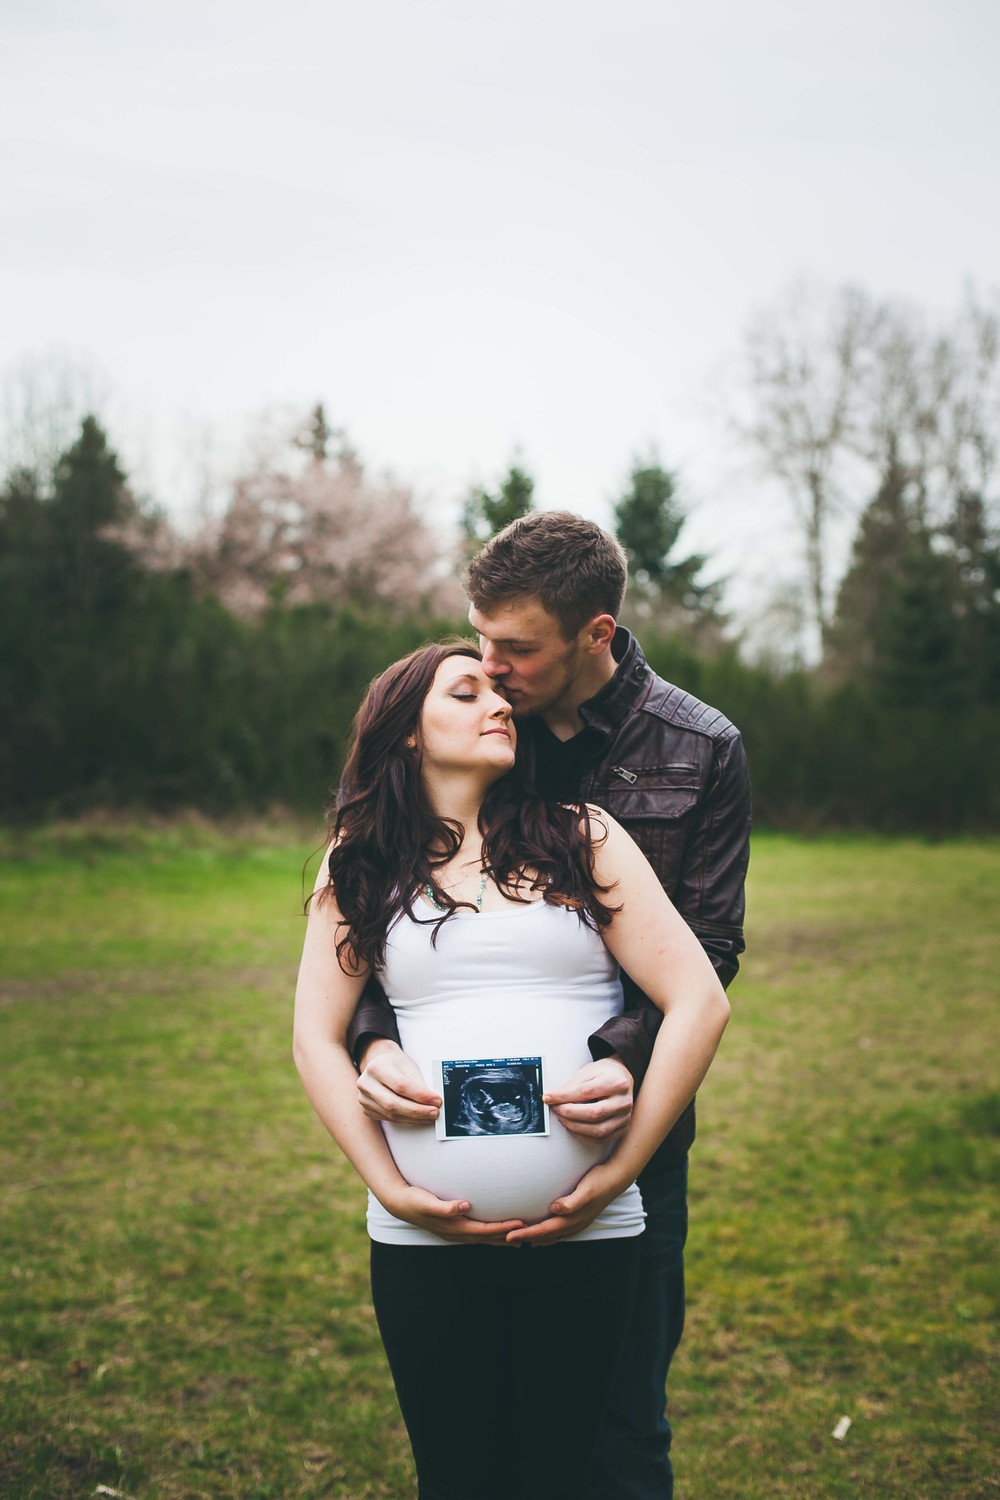 Gendro_Family_taylerchristinephotography (33 of 81).jpg